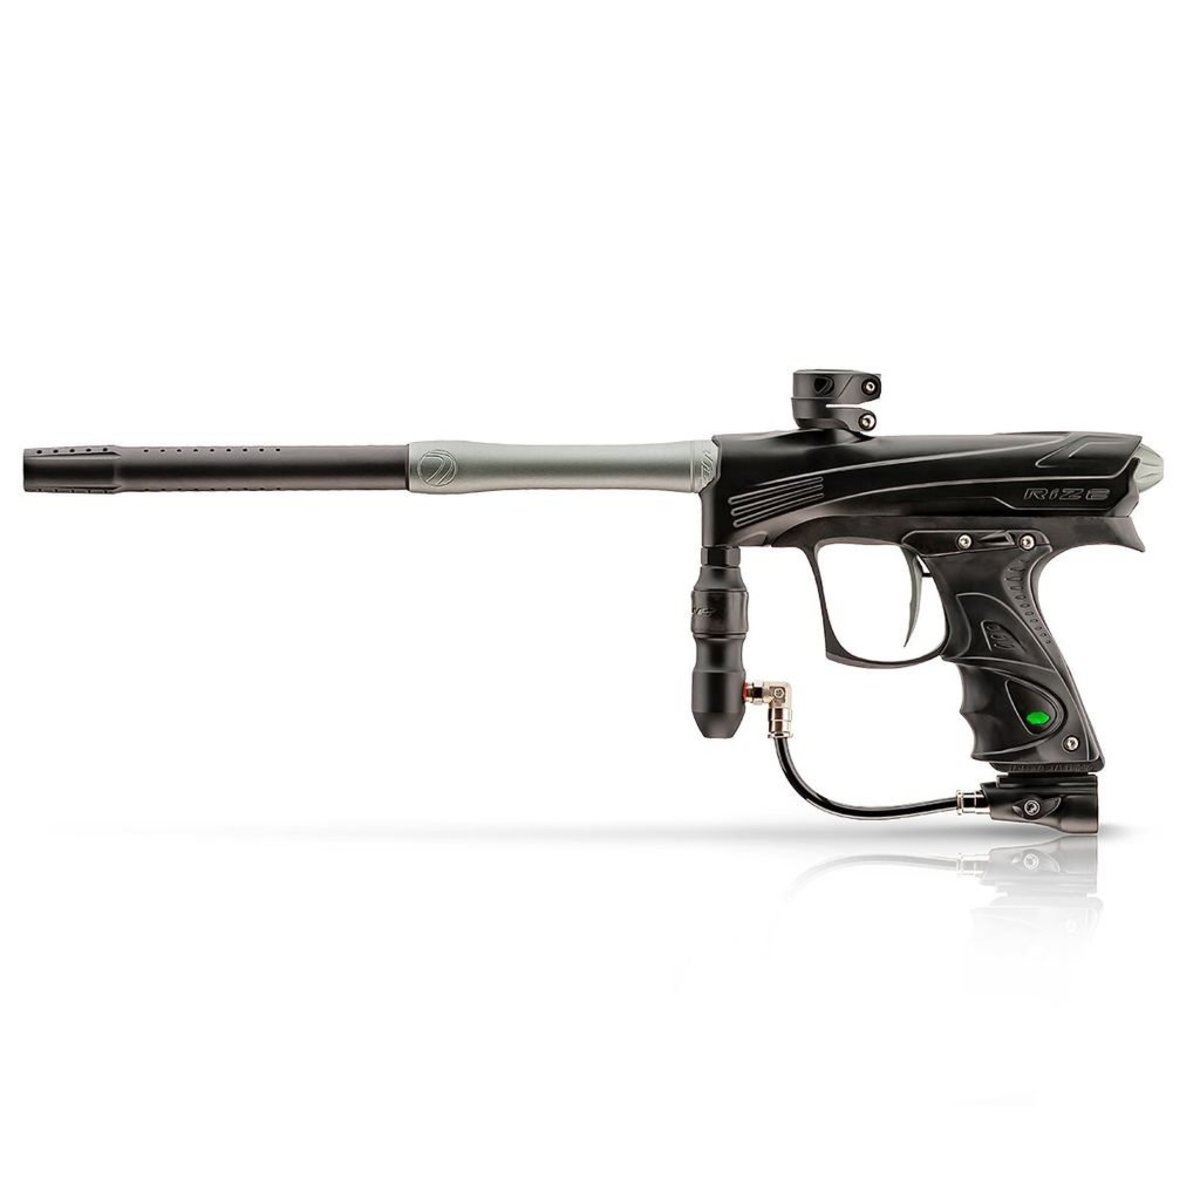 View larger image of Dye Rize CZR Paintball Gun